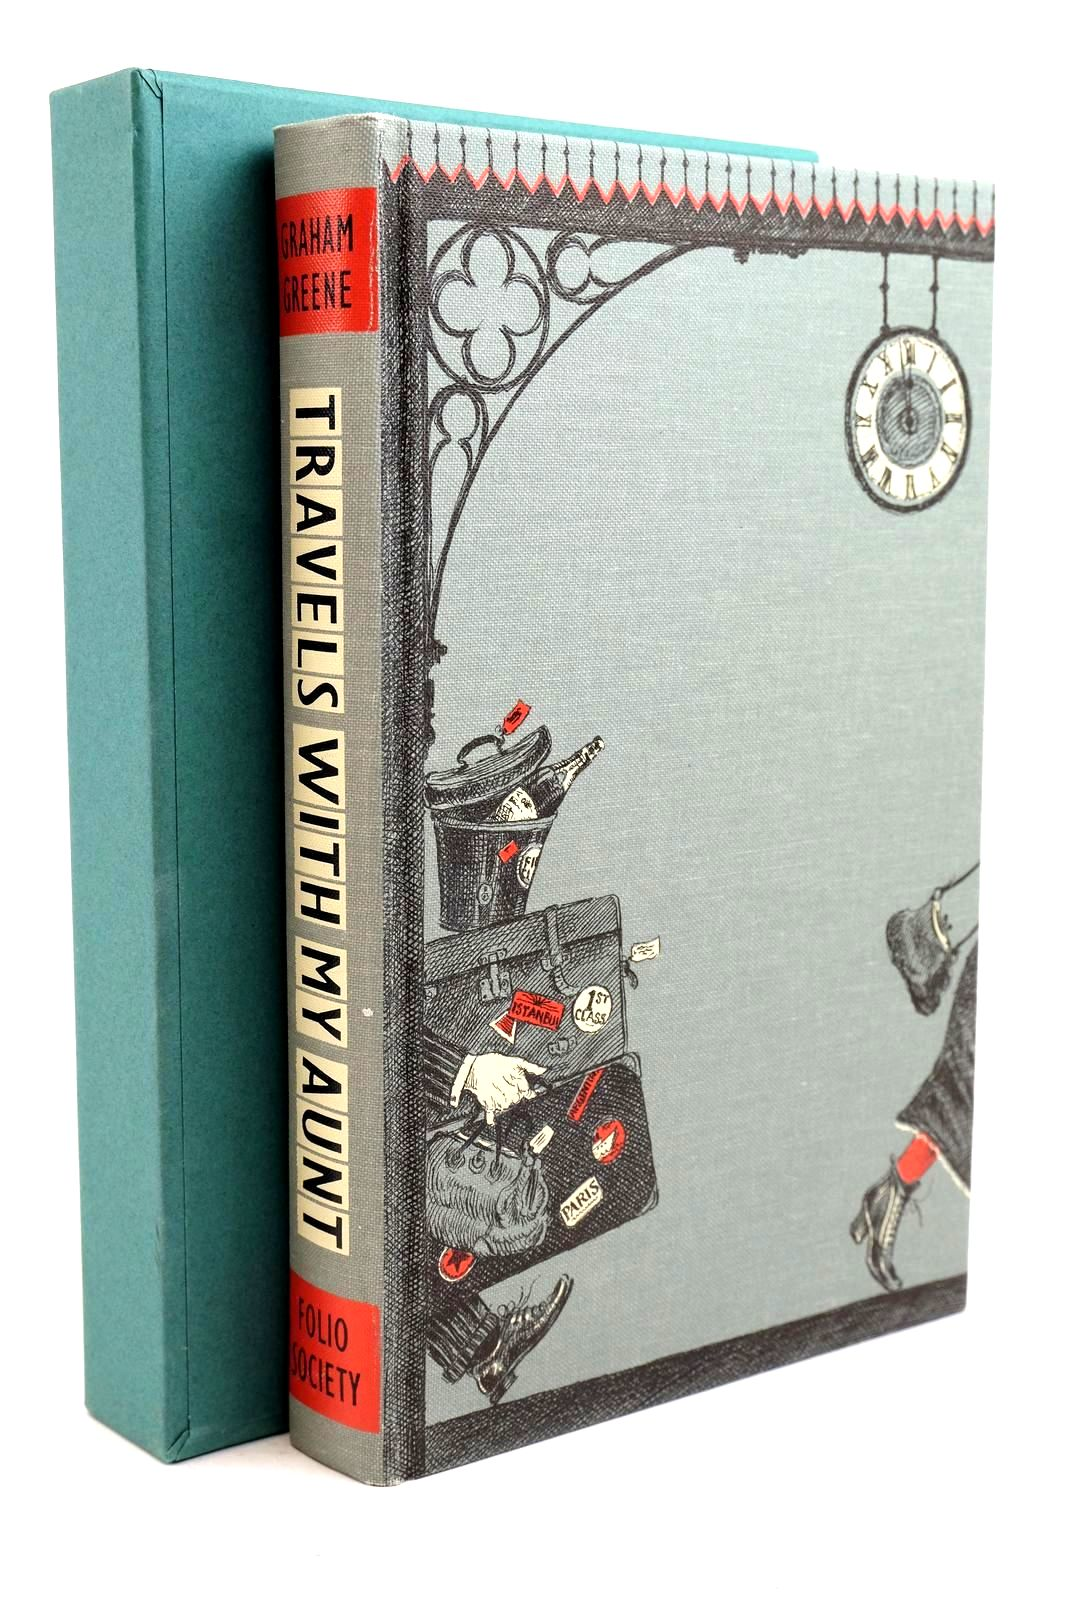 Photo of TRAVELS WITH MY AUNT: A NOVEL written by Greene, Graham Mortimer, John illustrated by Holder, John published by Folio Society (STOCK CODE: 1321312)  for sale by Stella & Rose's Books